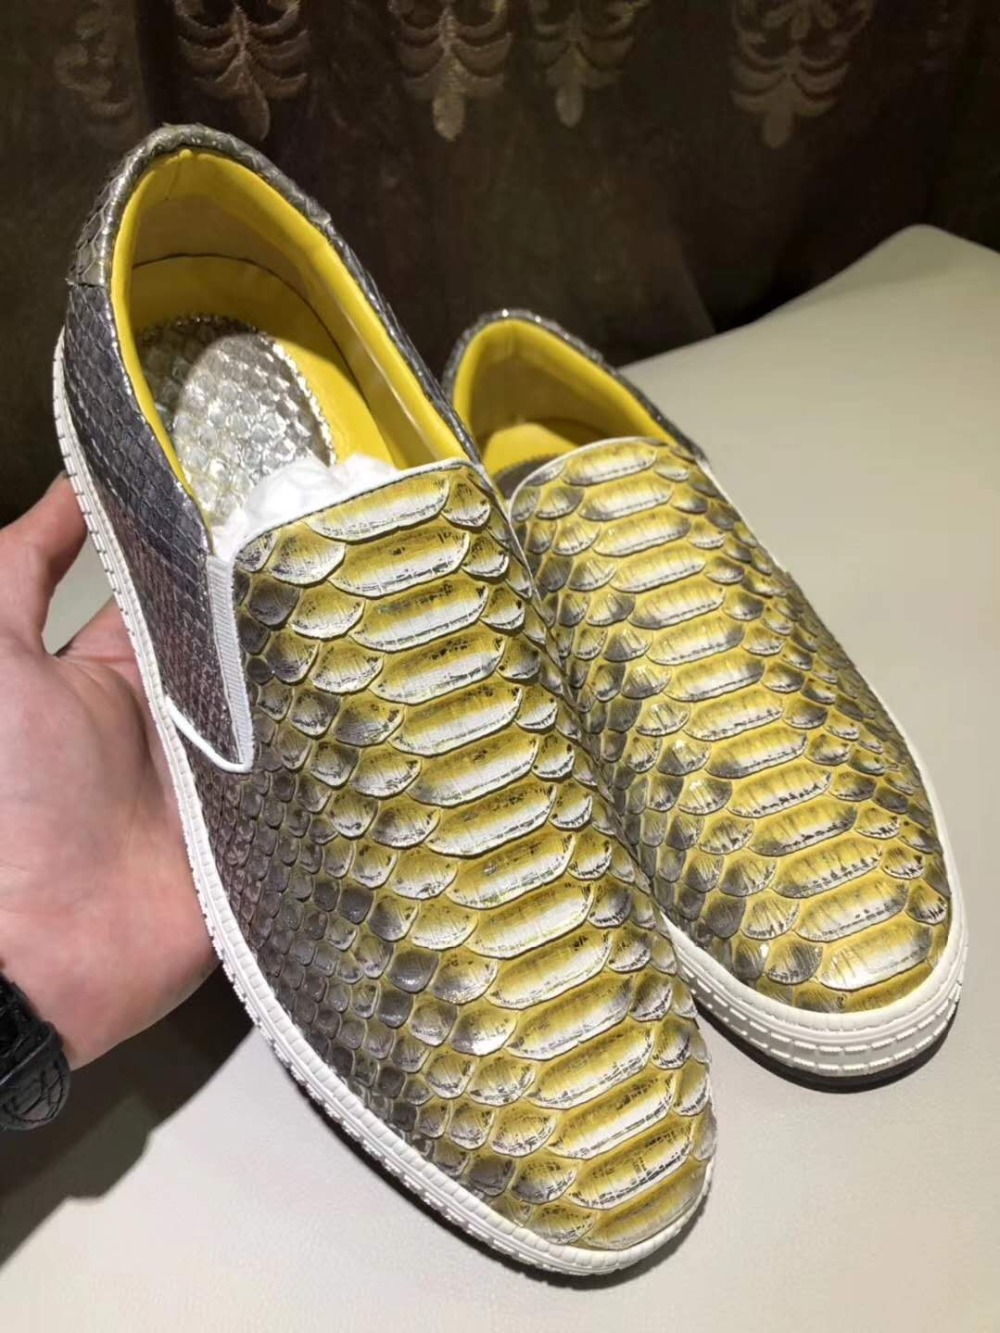 100% Genuine real python/snake skin men shoe durable solid men leisure fashion shoe in color yellow and red strong thread base100% Genuine real python/snake skin men shoe durable solid men leisure fashion shoe in color yellow and red strong thread base